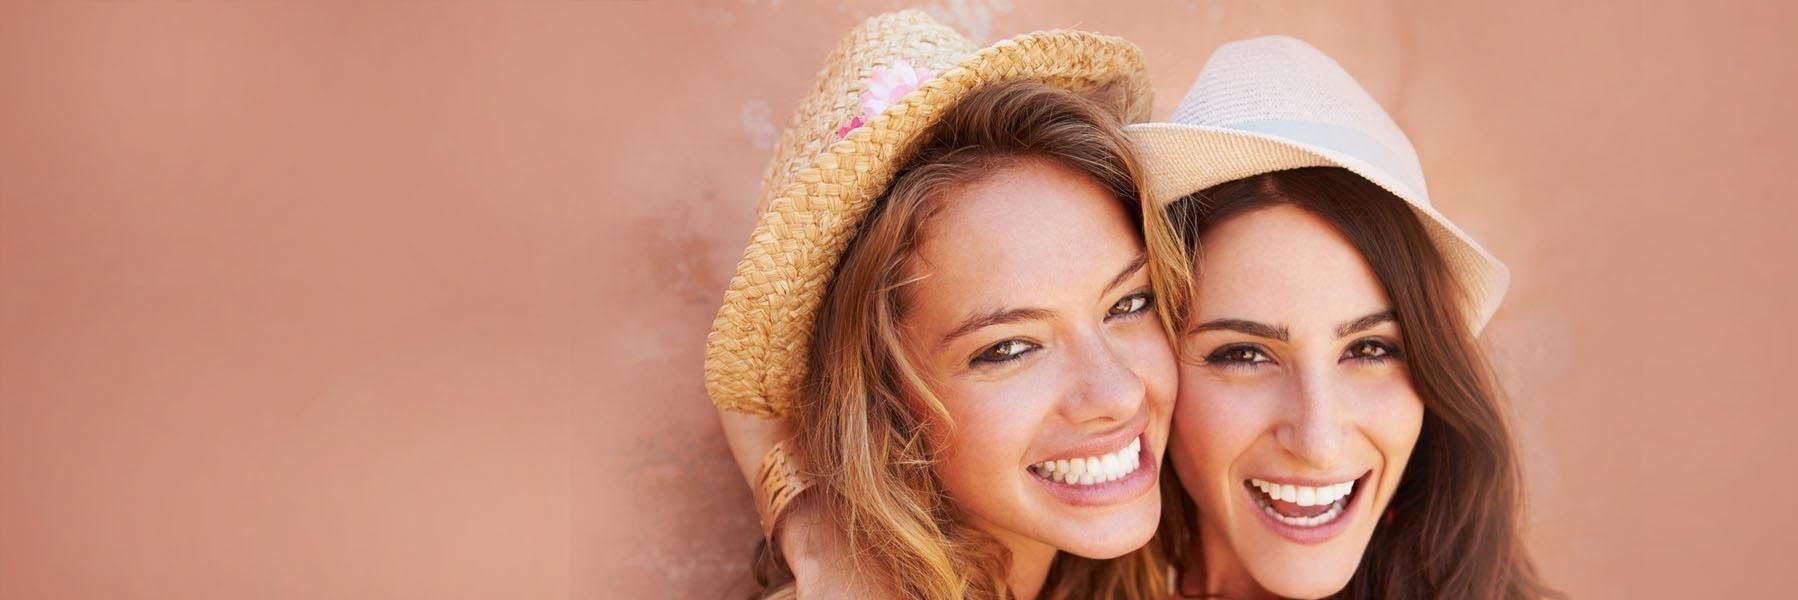 Two women in hats smiling